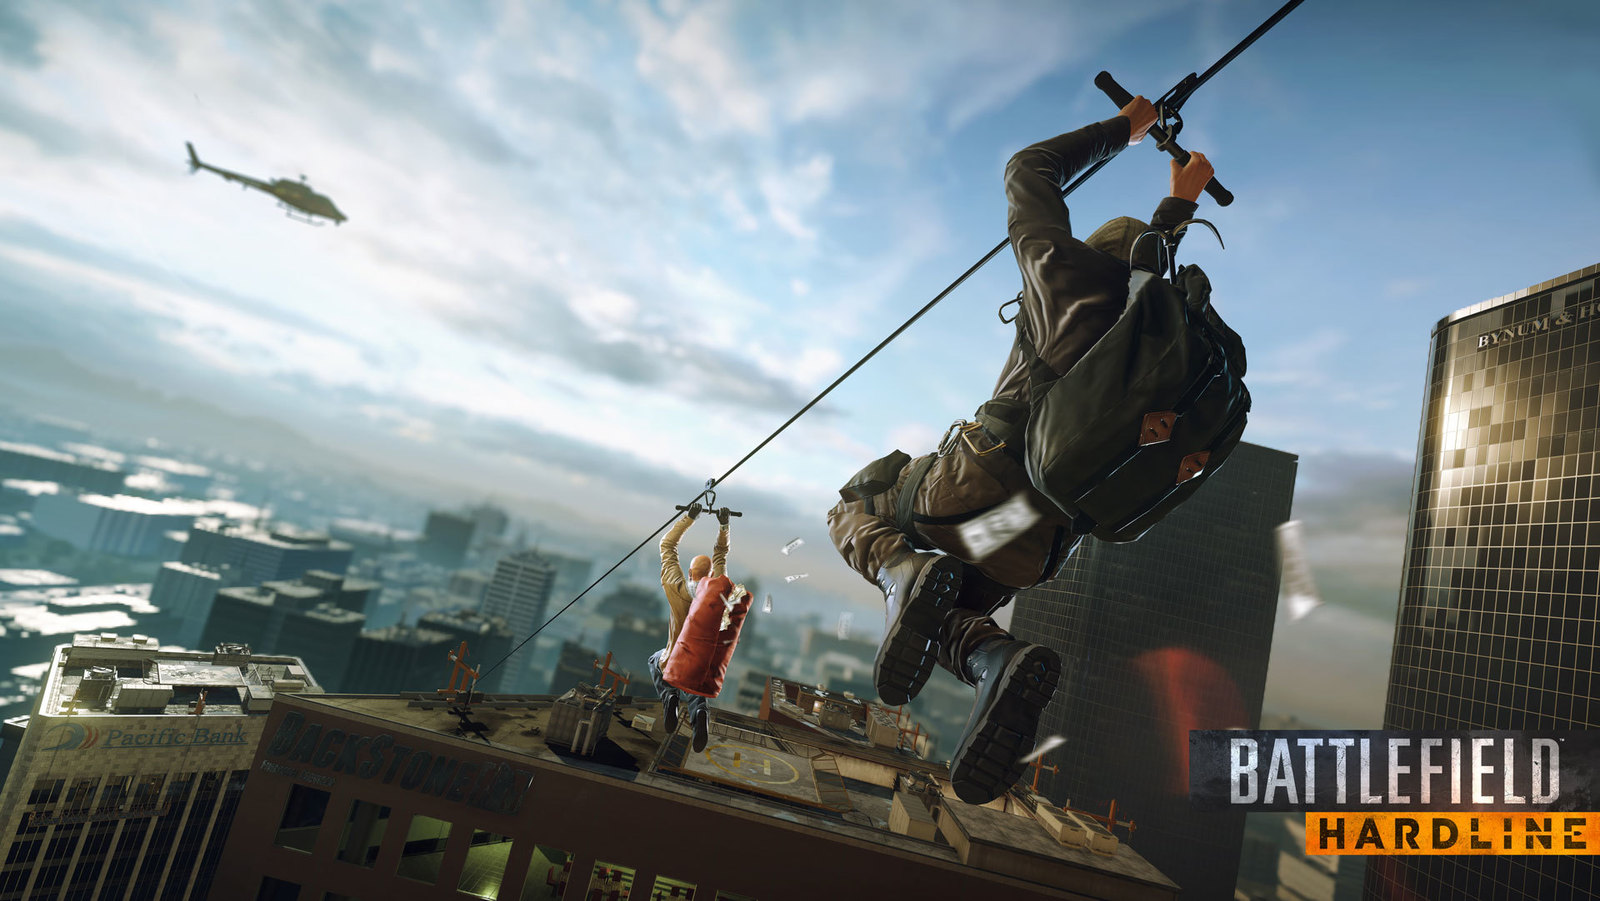 Battlefield Hardline for Xbox One image